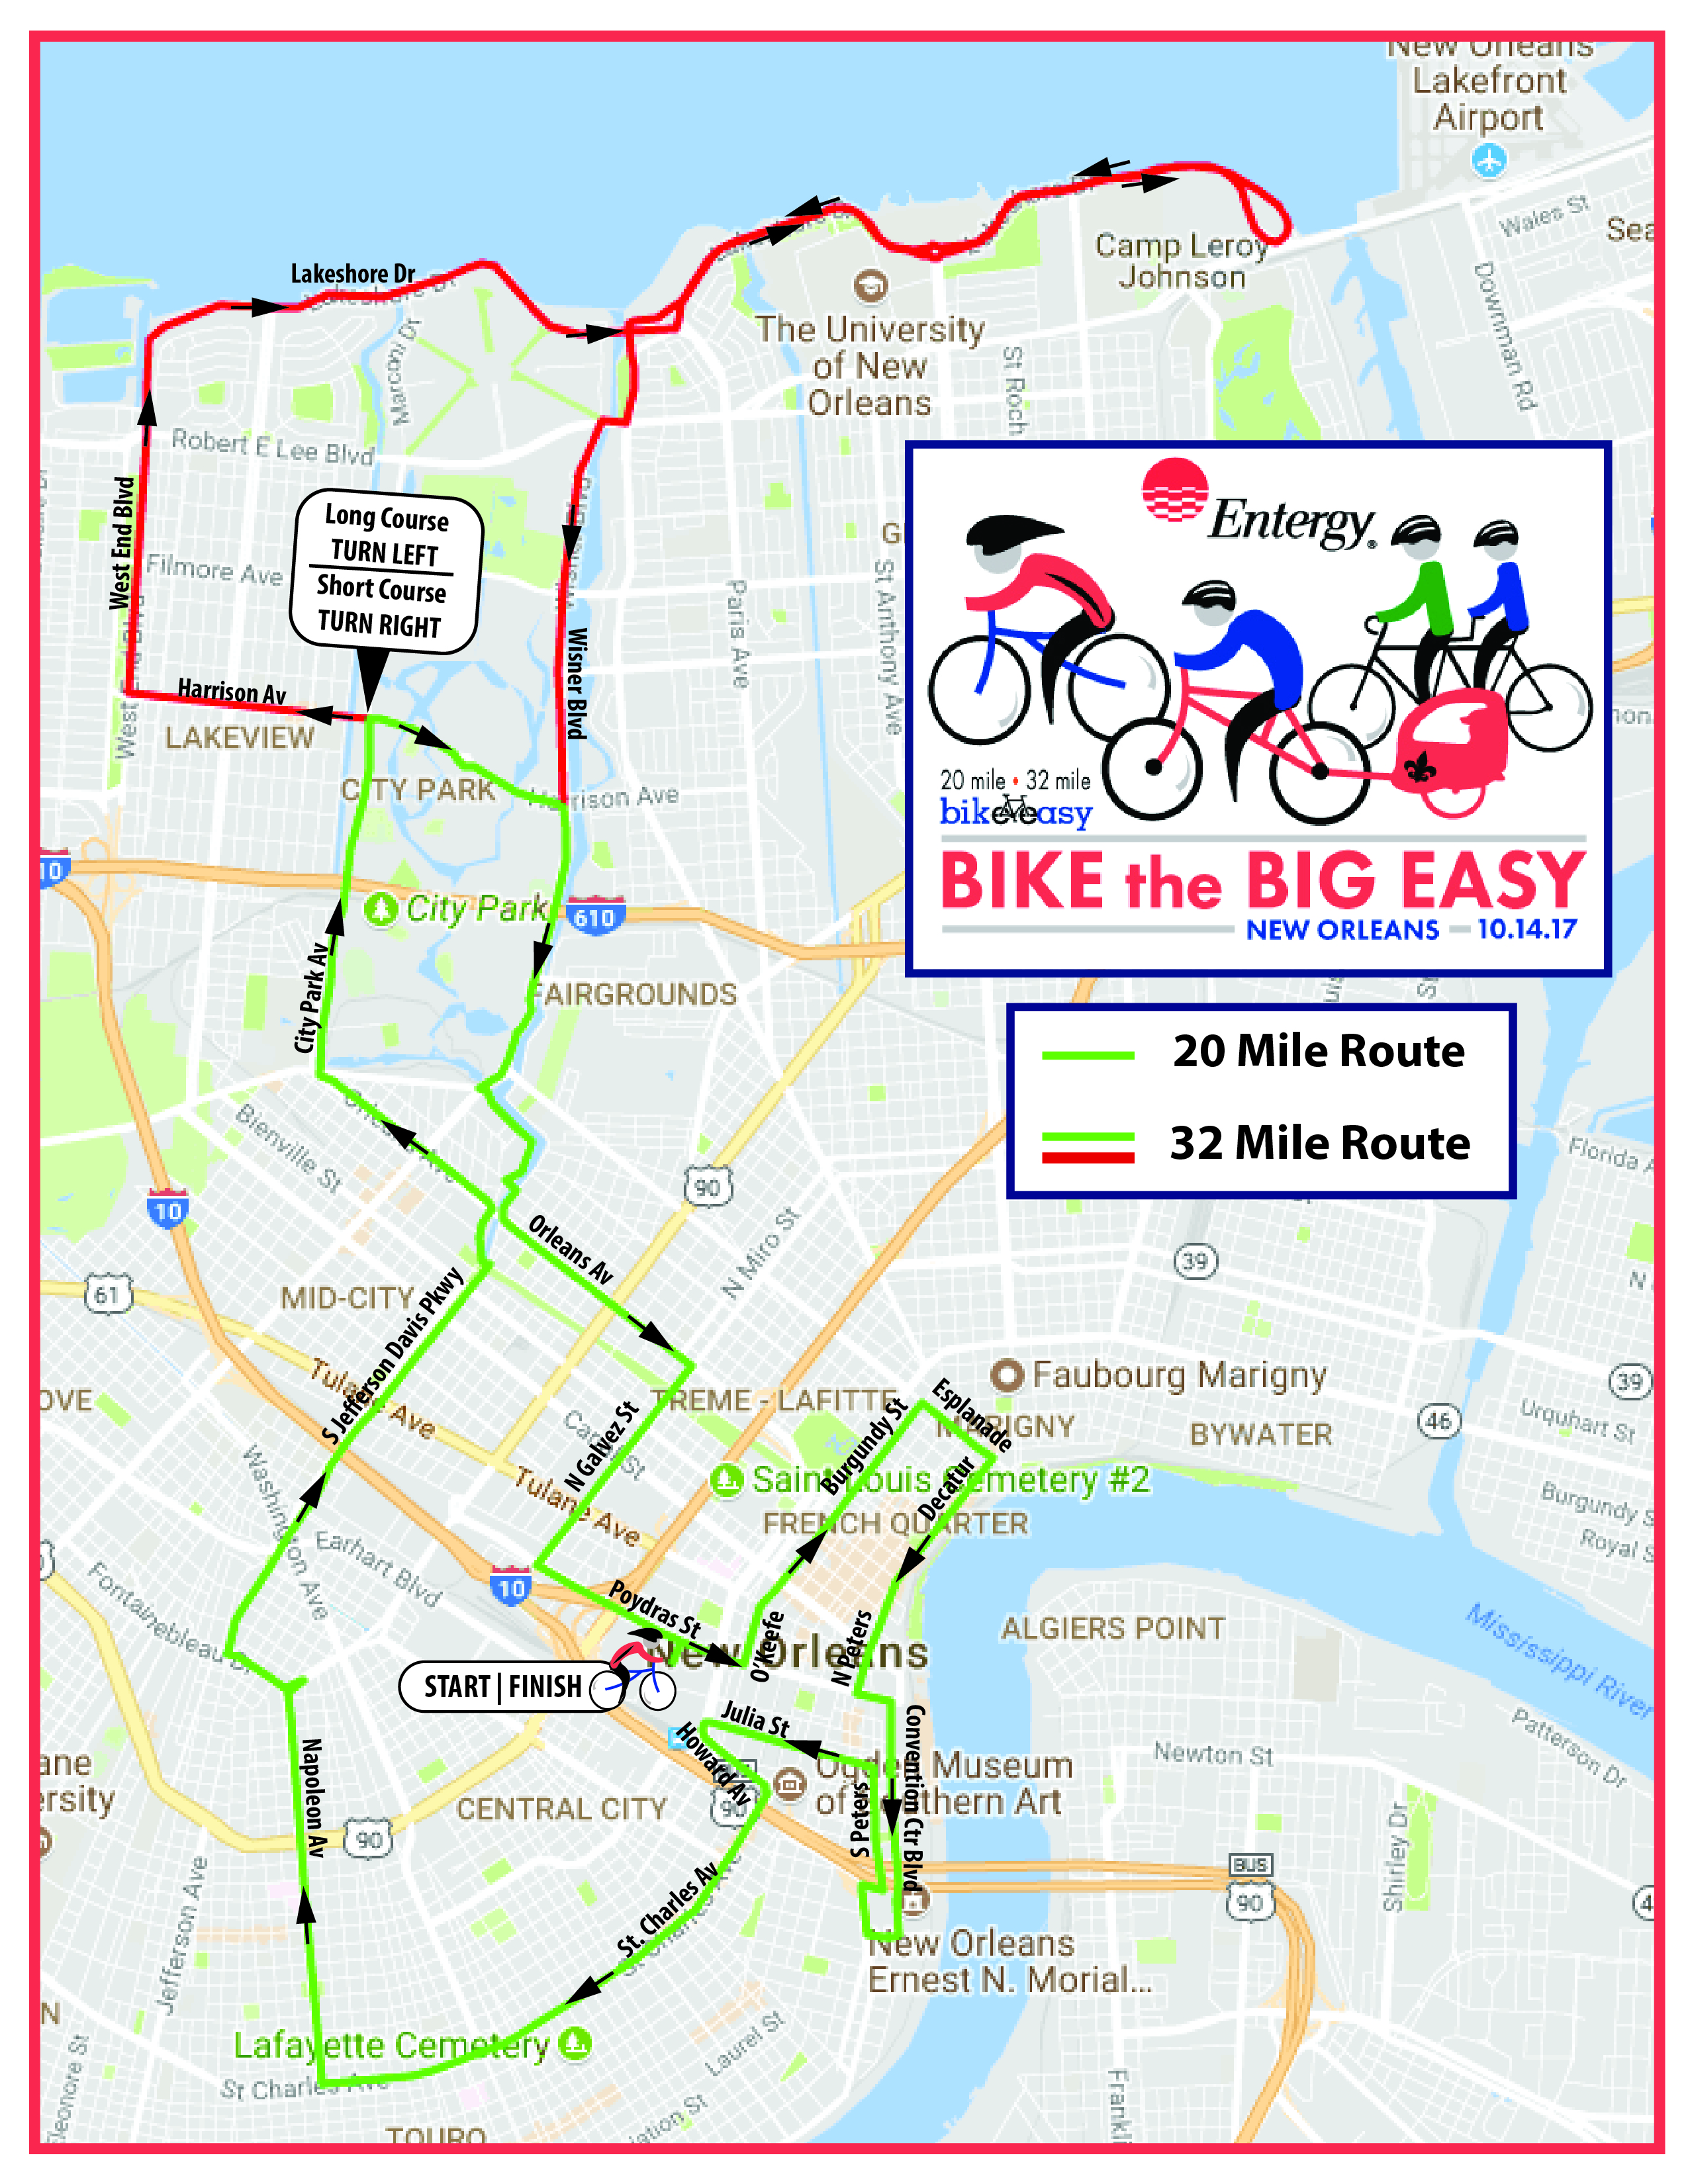 Bike the Big Easy Revised 2017 Course Map